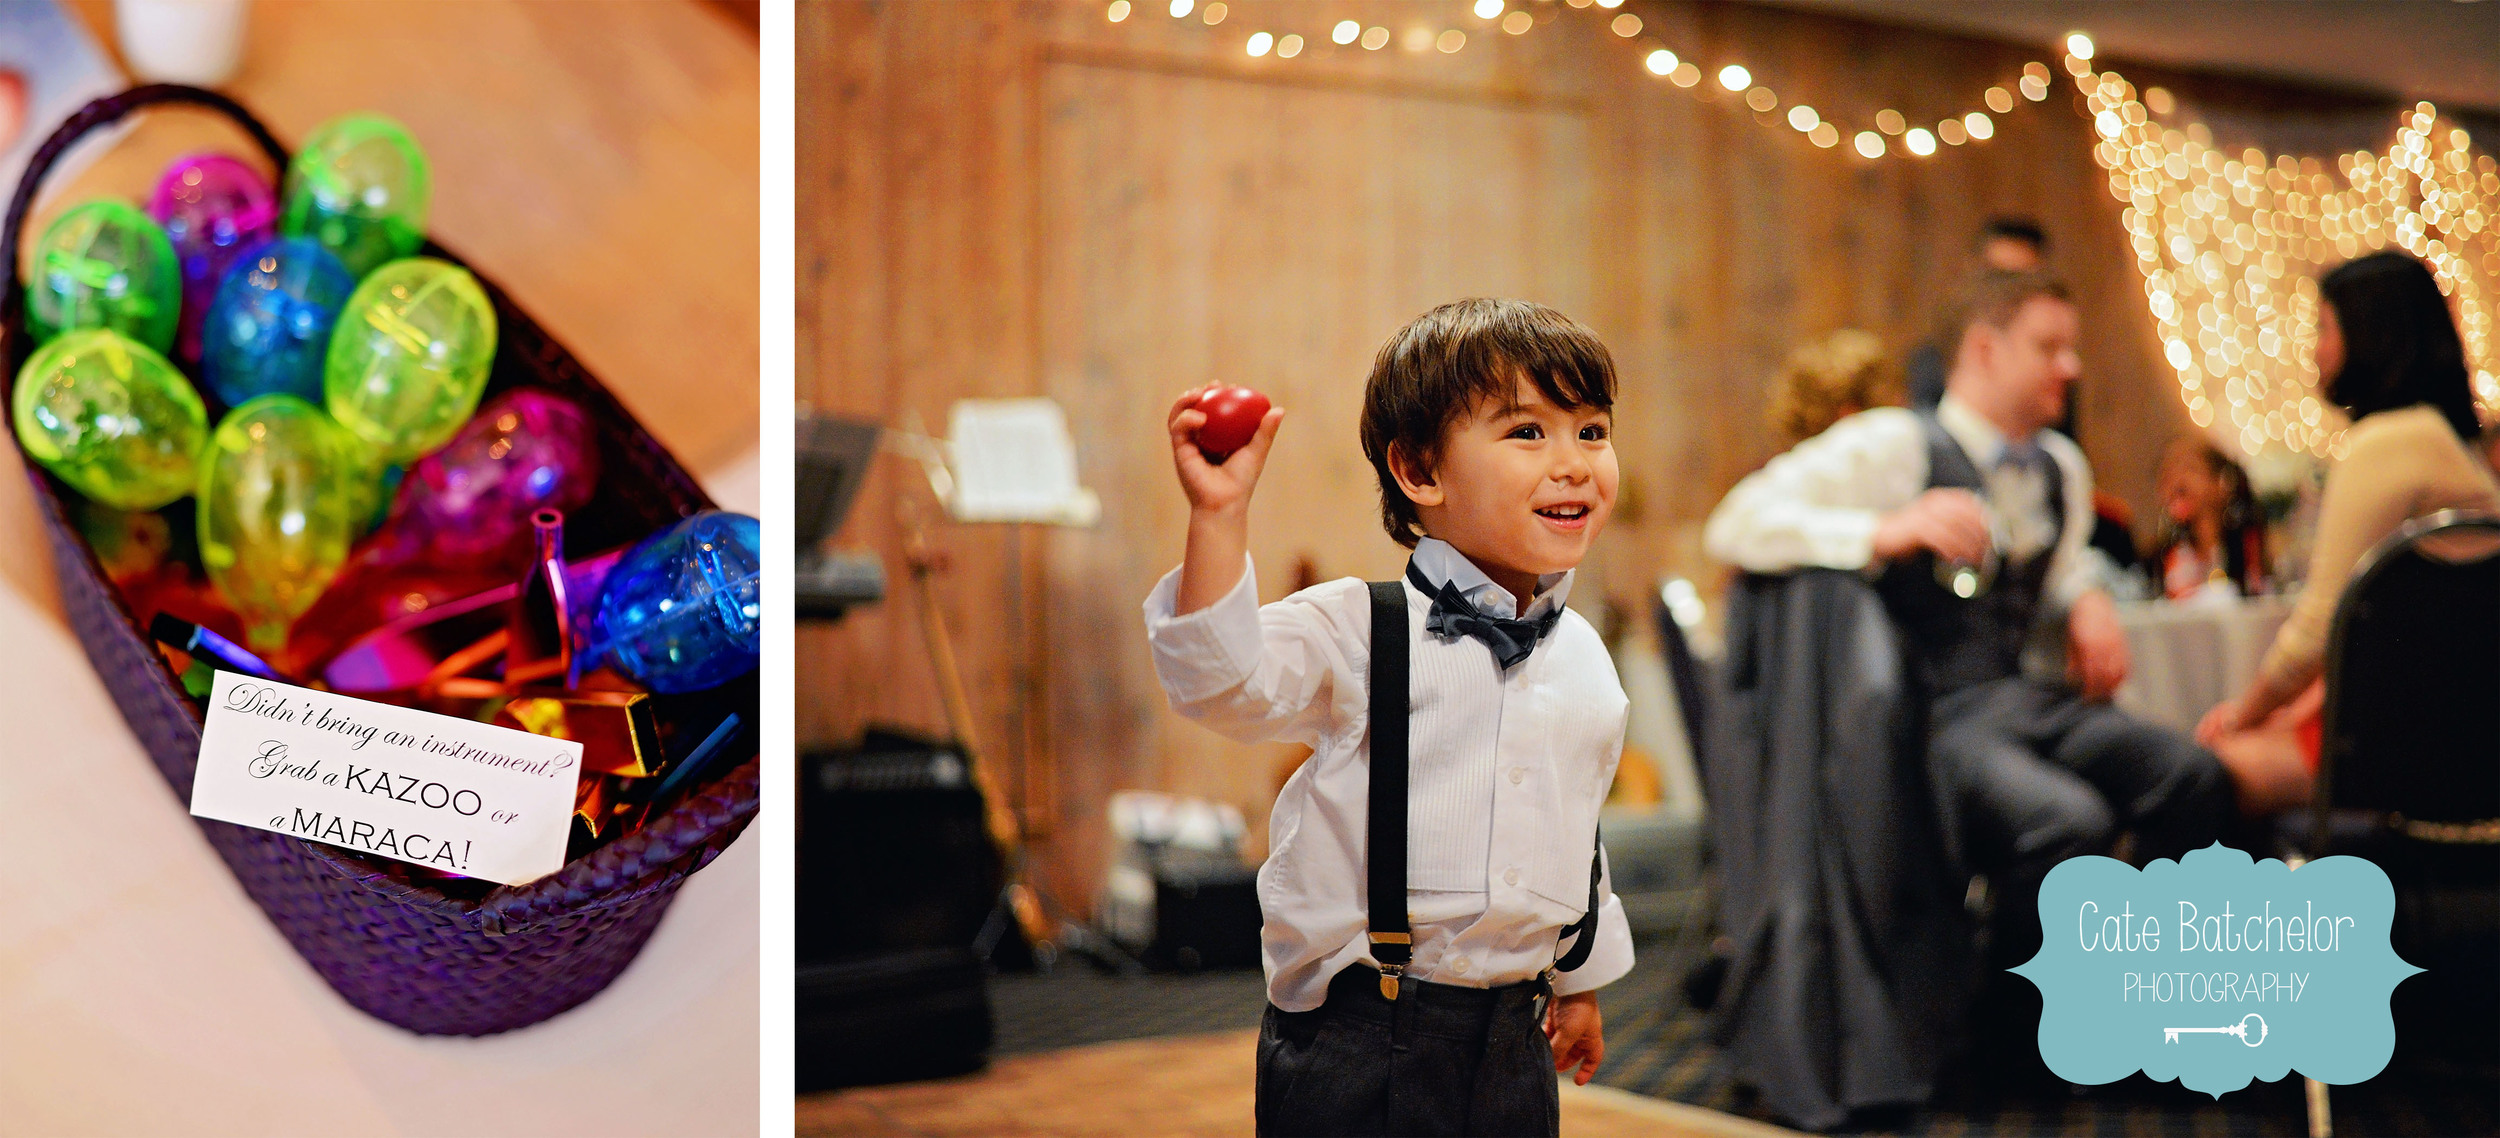 Music plays a large role in their relationship, so they had friends and family play their first dance song. Guests were encouraged to play along as well!